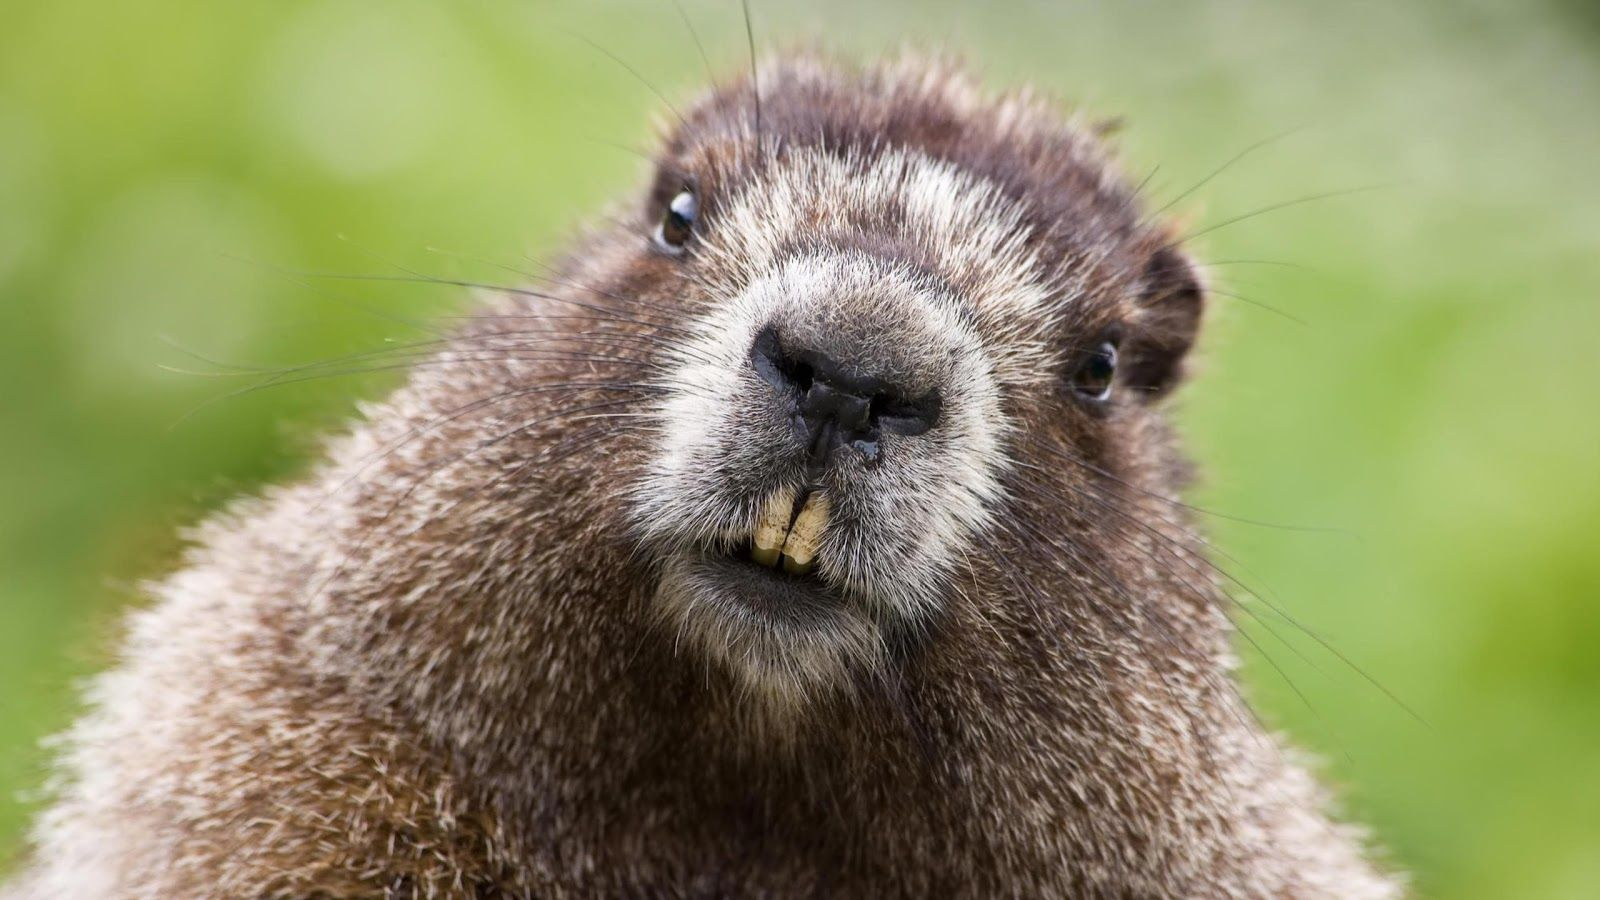 A beaver showing his teeth